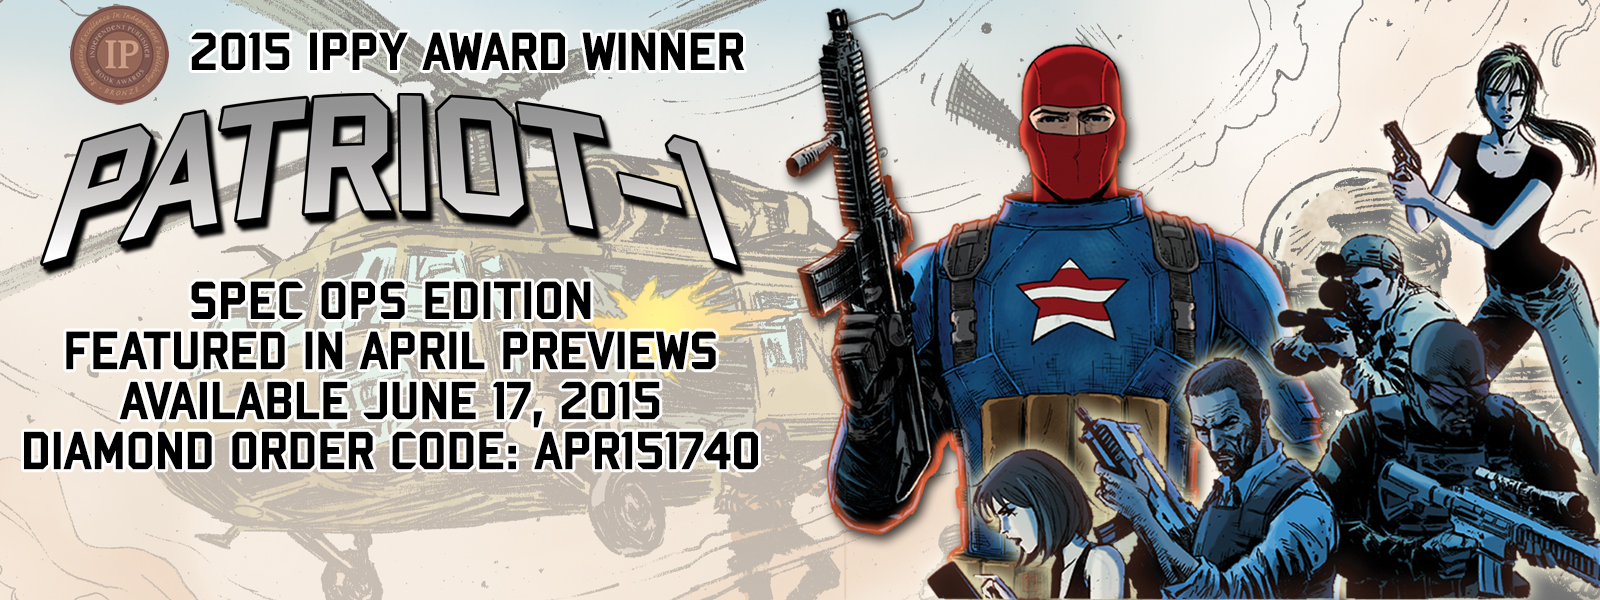 Patriot-1 Available June 17, 2015